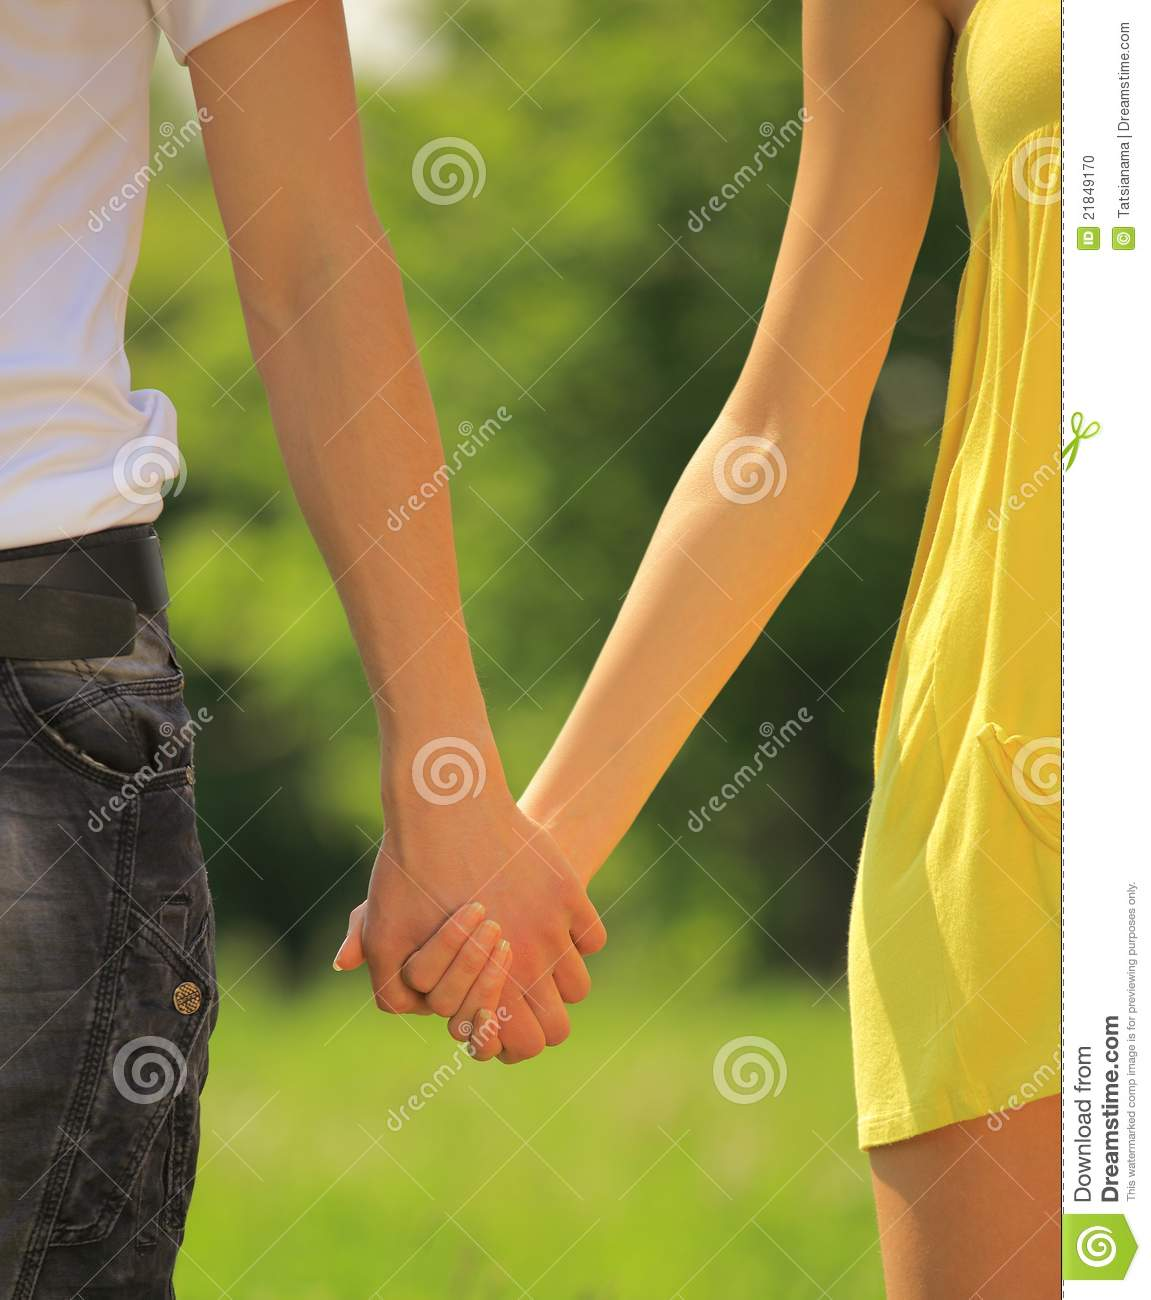 Image result for picture of a boy and girl holding hands